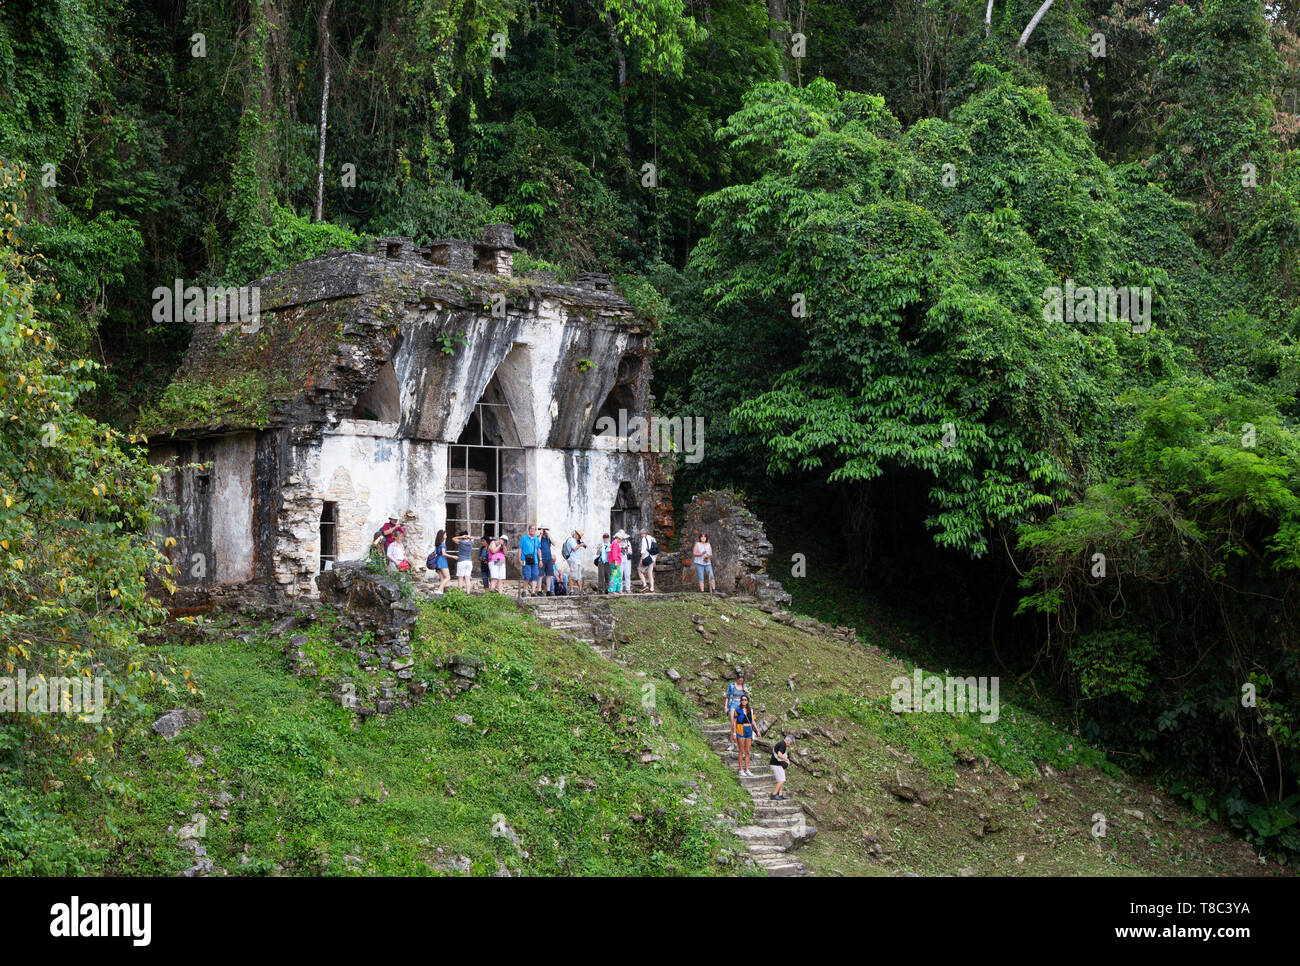 Mexico tourism - tourists visiting the Temple of the Foliated Cross, part of the Temple of the Cross Complex, ancient Maya ruins, Palenque Mexico - Stock Image